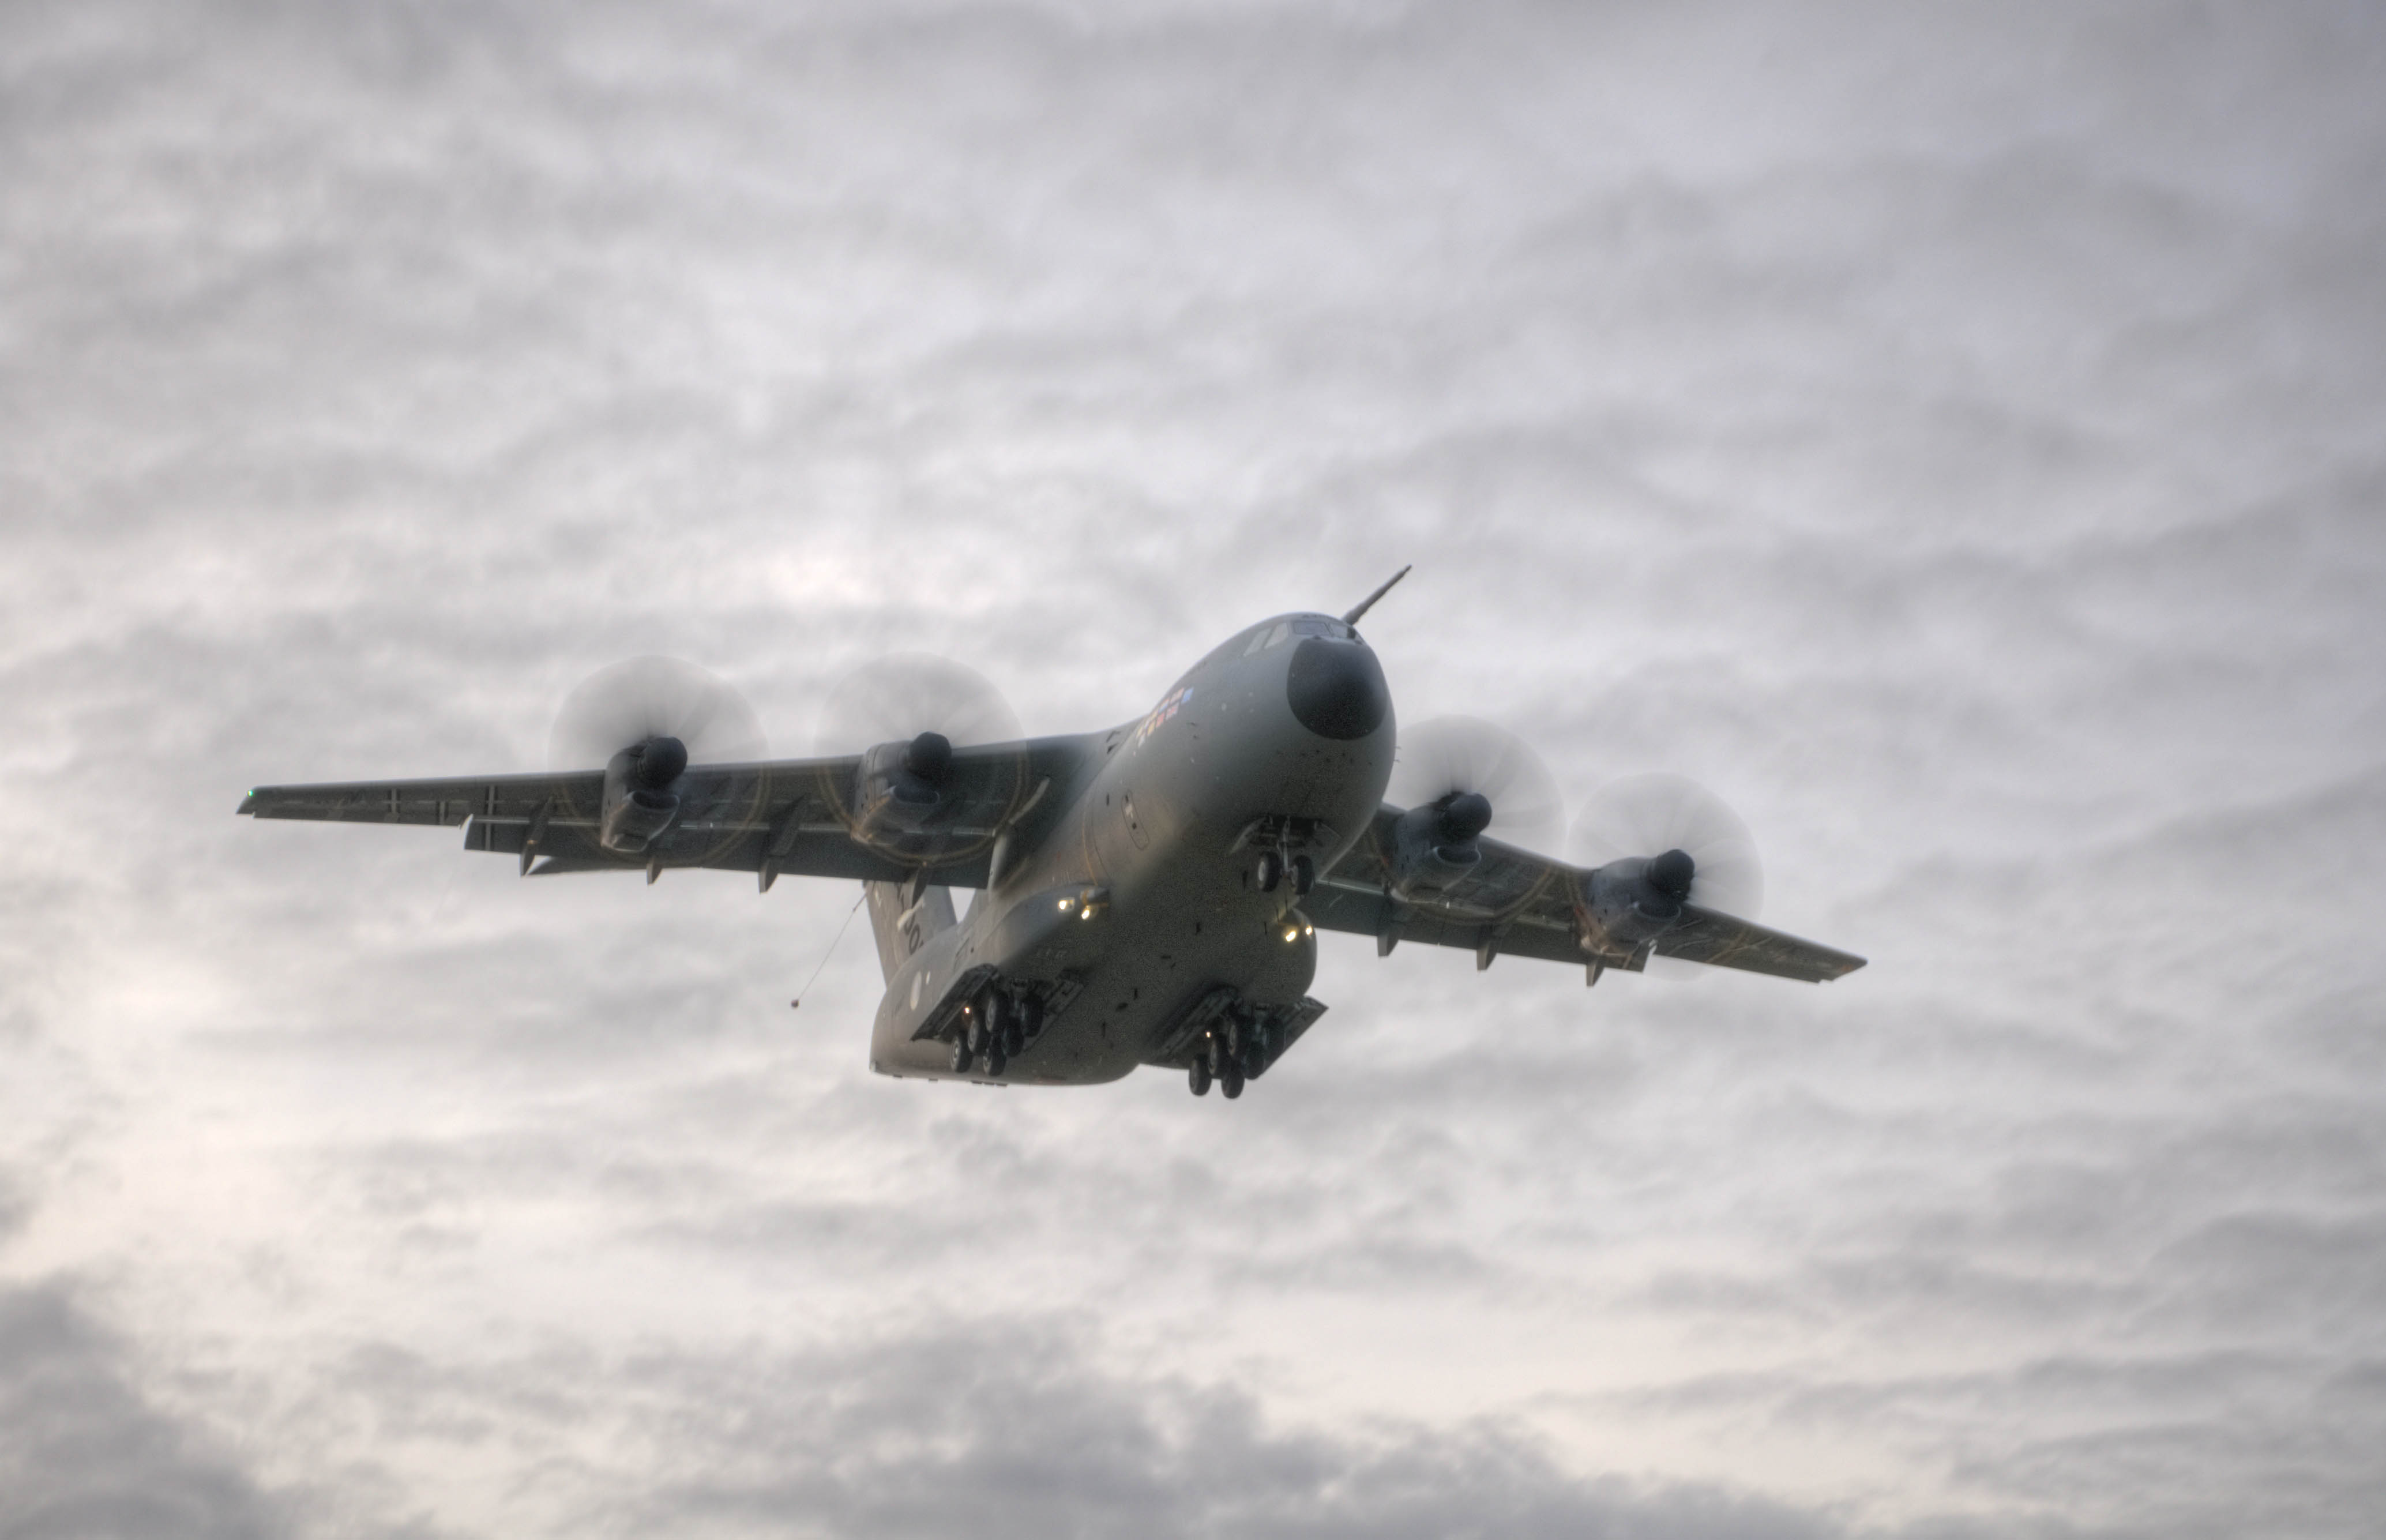 Faulty software install led to Airbus A400M plane crash